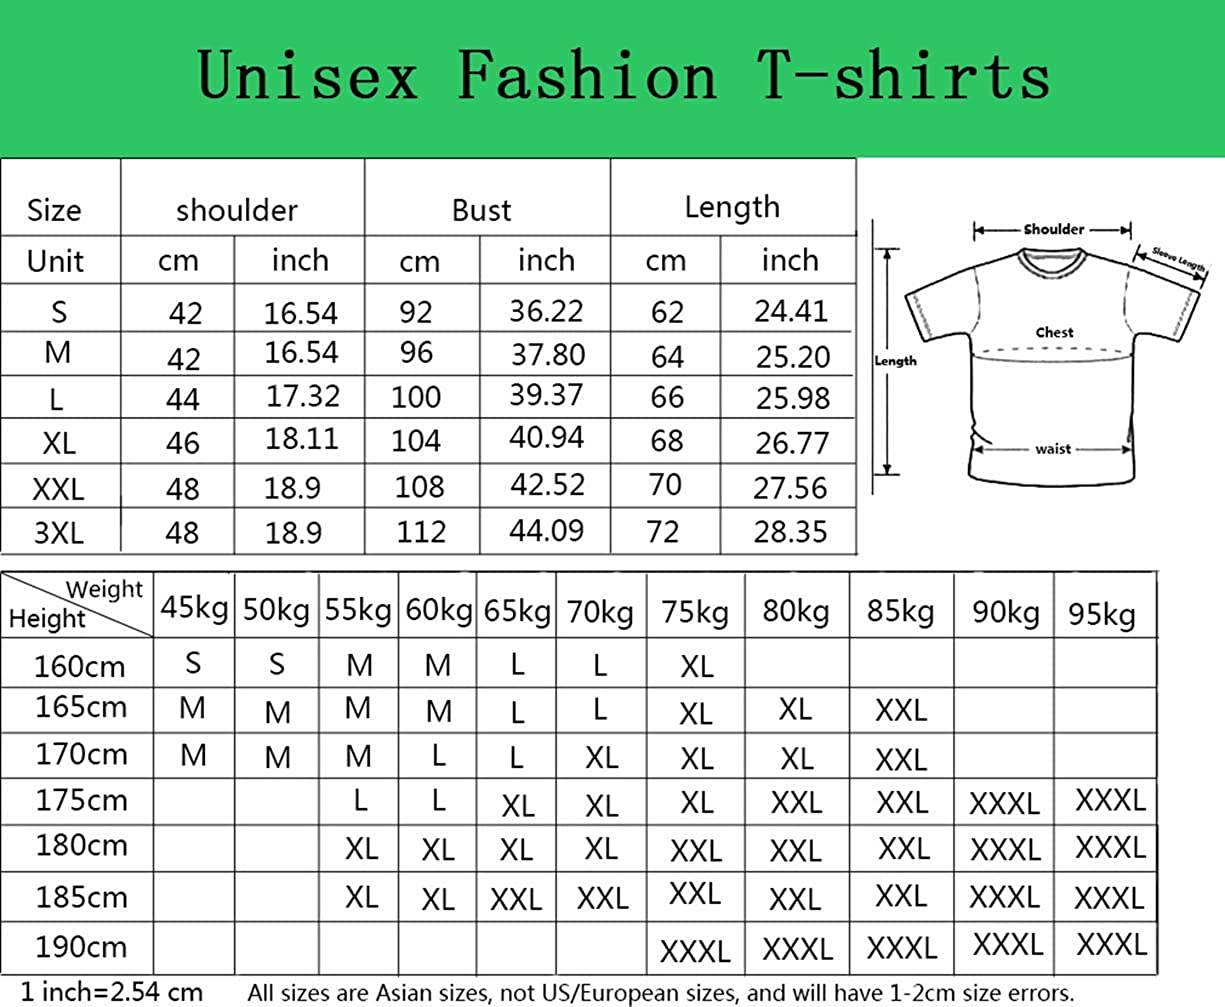 Mnshirt Latte Differenziale Formaggio Matematica 9 Mens Print T-Shirt Short Sleeve Blouse Tank Tops